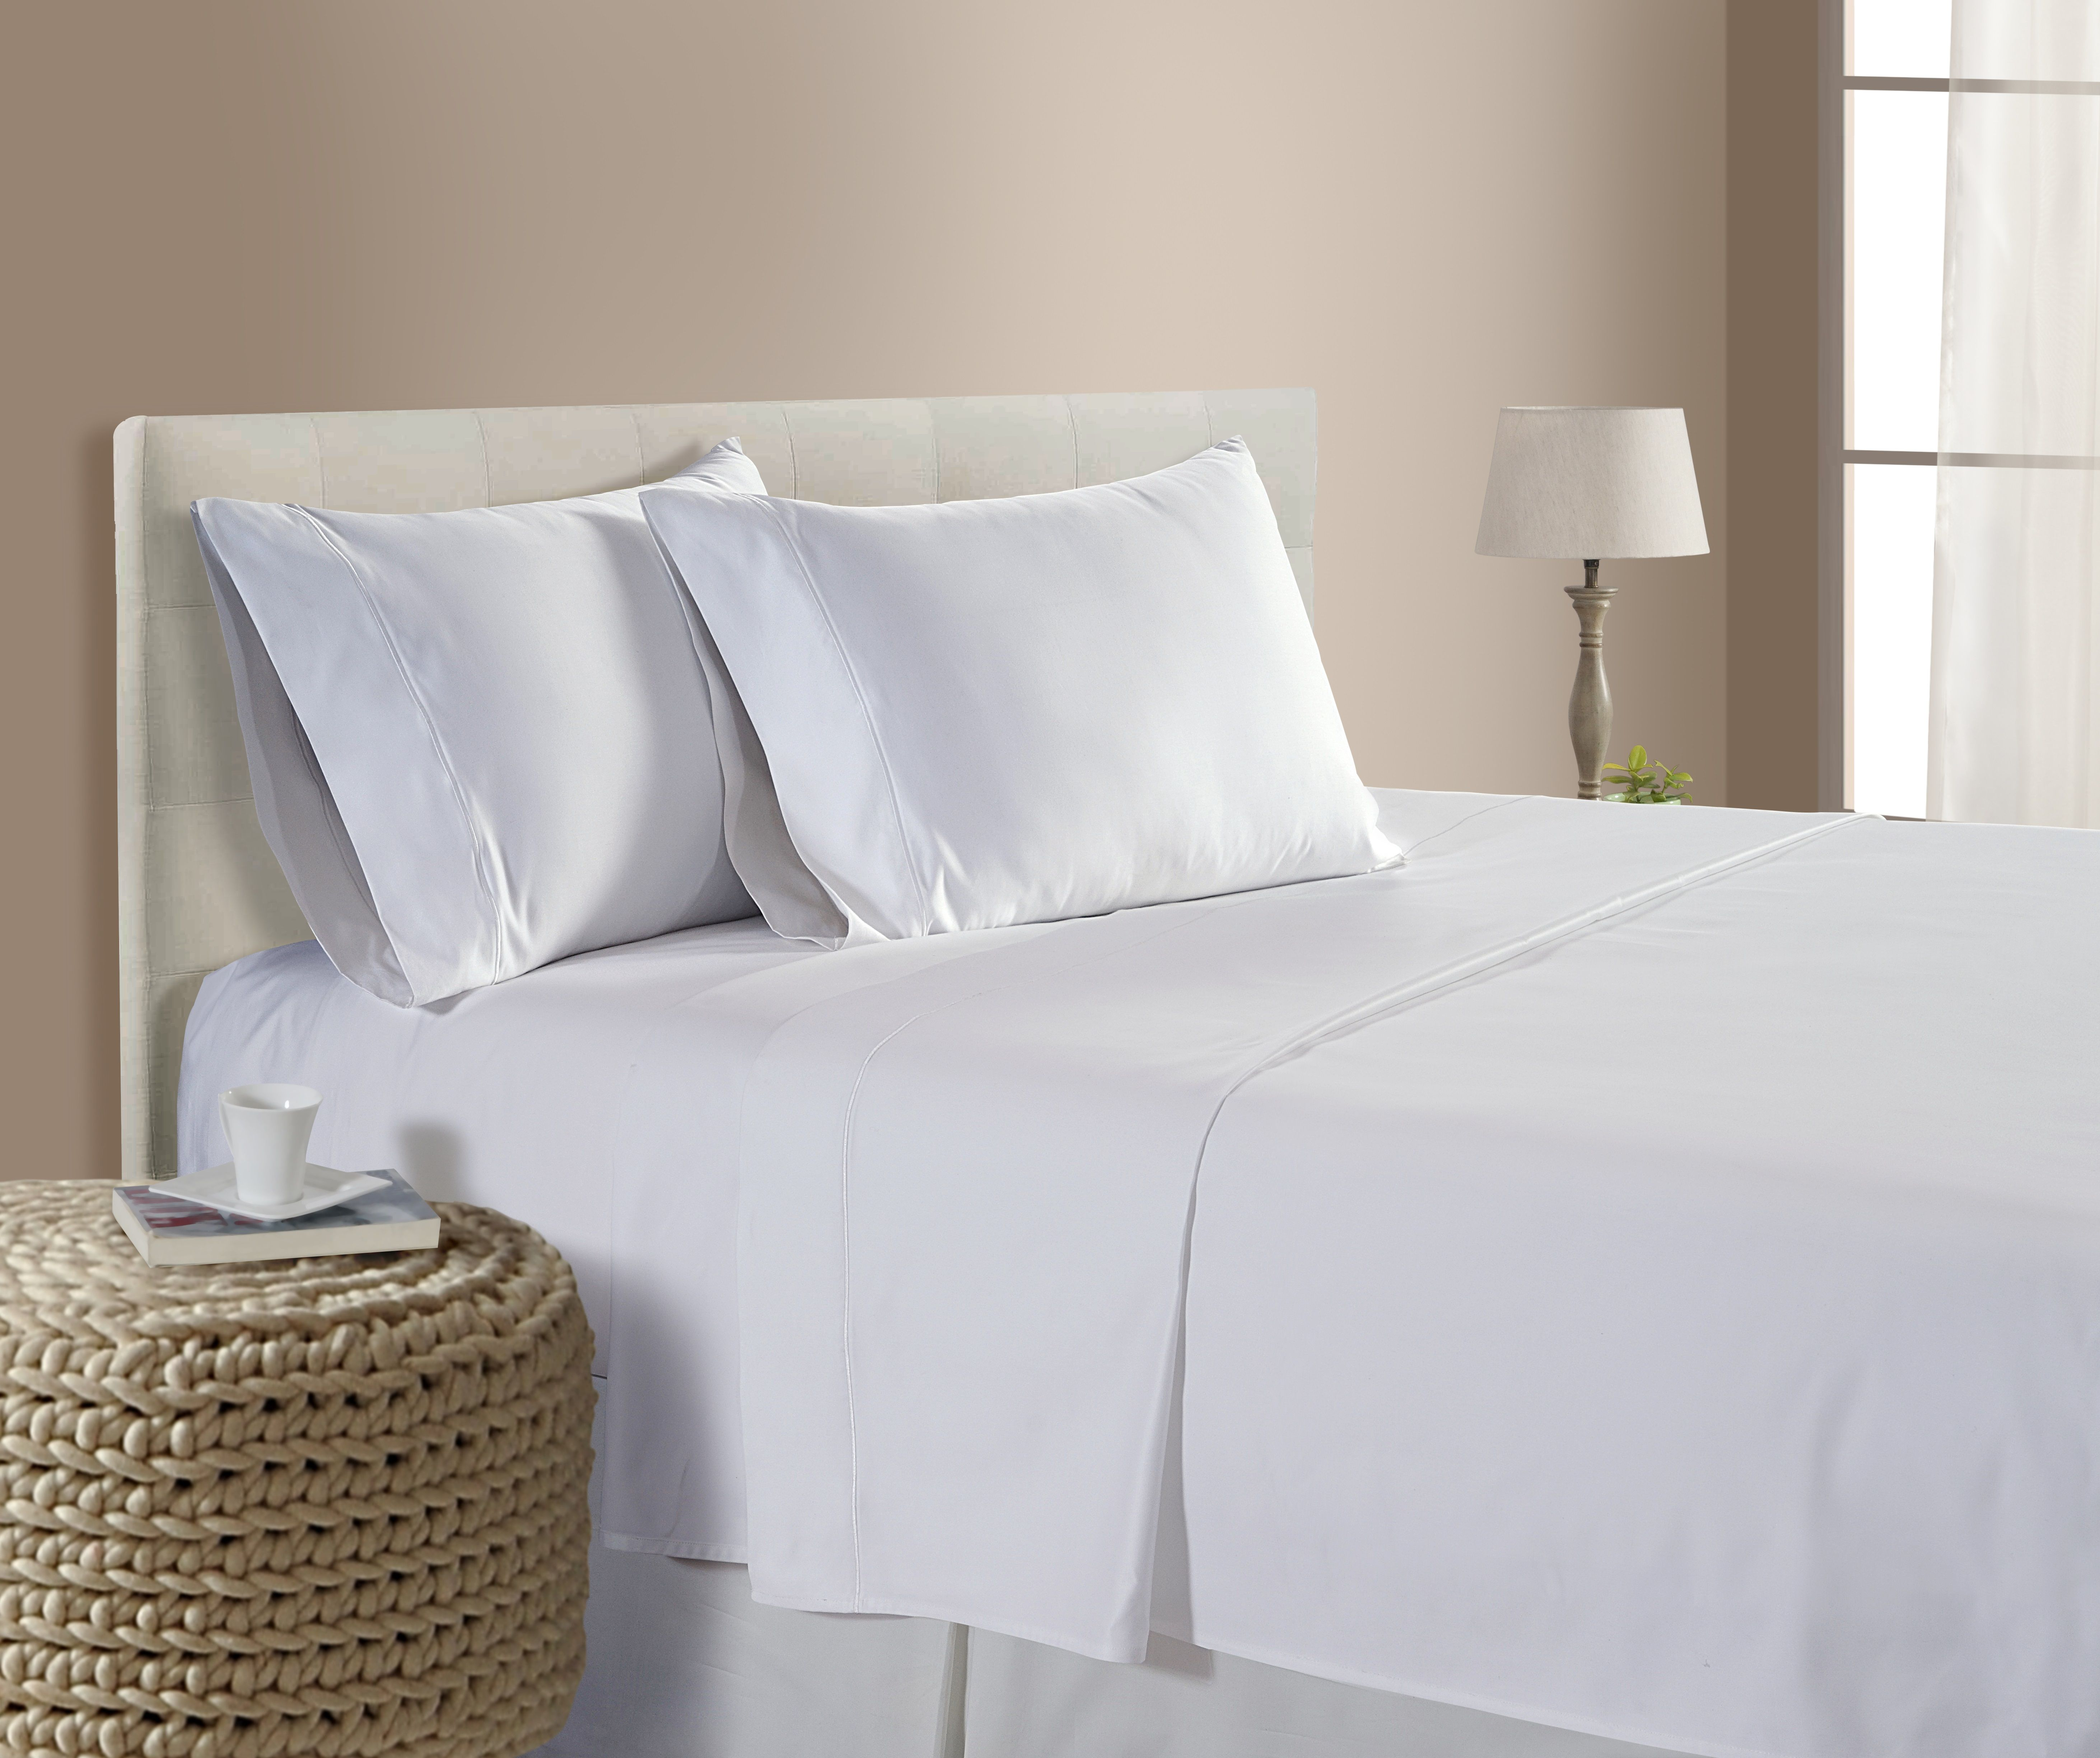 Luxury 100 Egyptian Cotton 800 Thread Count Sheet Set Addy Home Fashions White King Walmart Com Bed Sheet Sets King Size Sheets Egyptian Cotton Sheets 100 cotton king size sheets